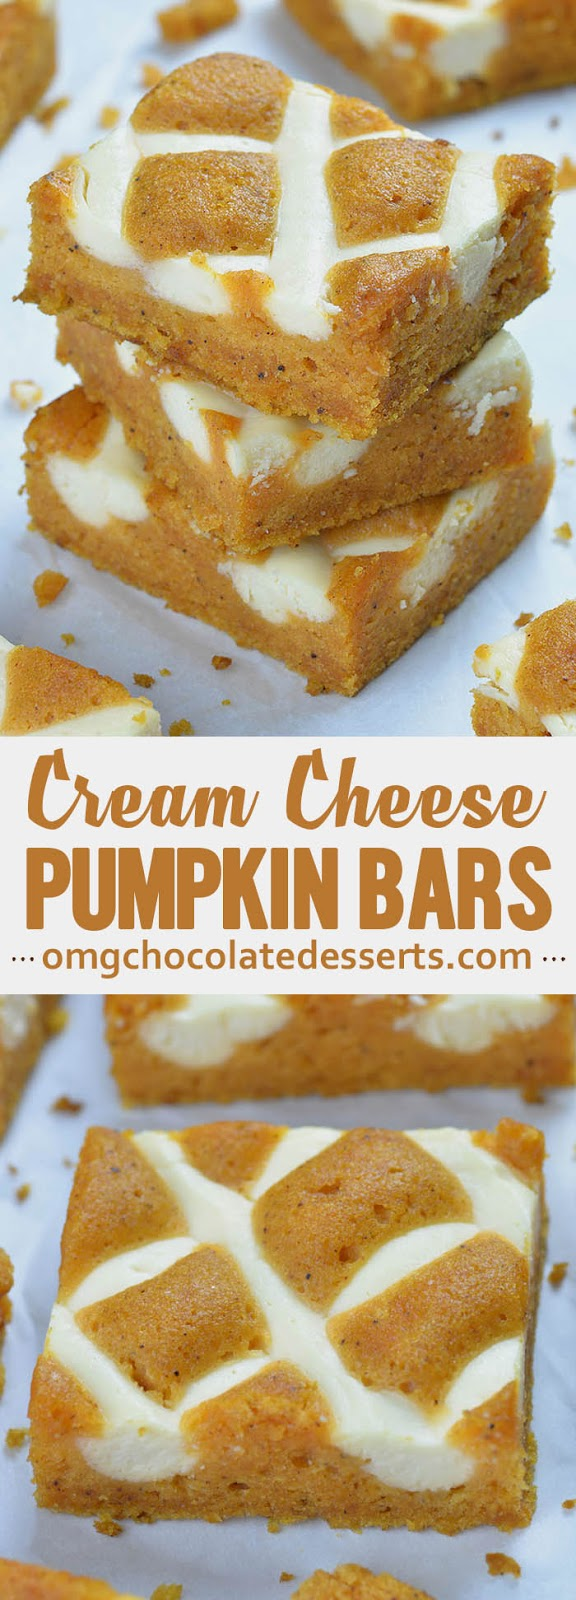 If you like these awesome Pumpkin Bars with Cream Cheese Recipe you will also like these pumpkin dessert recipes